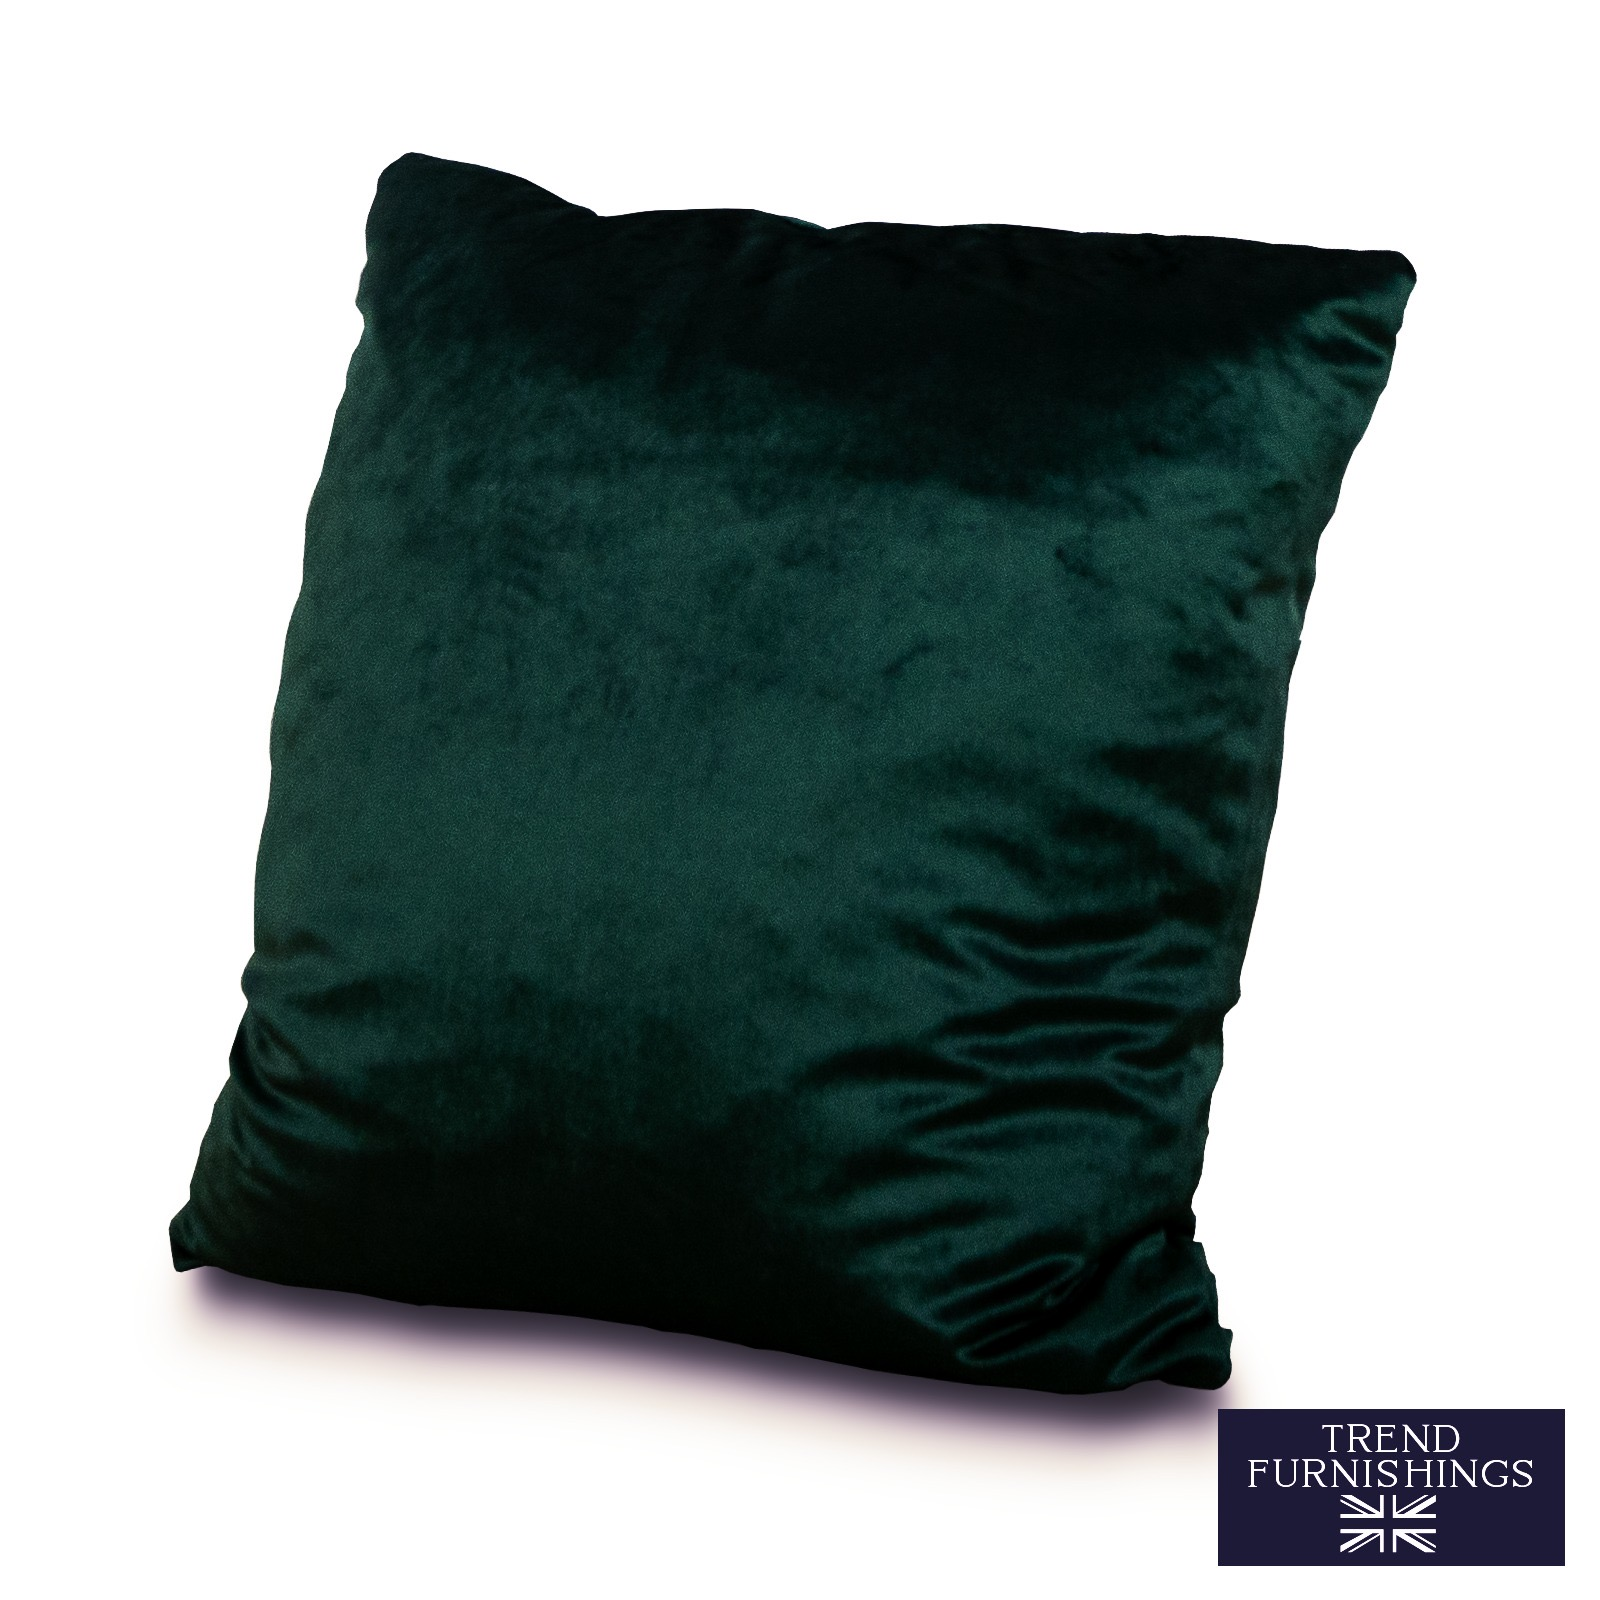 Velvet Soft Plush Cushion Covers 9 Colours Filled or Unfilled Handmade in the UK 5